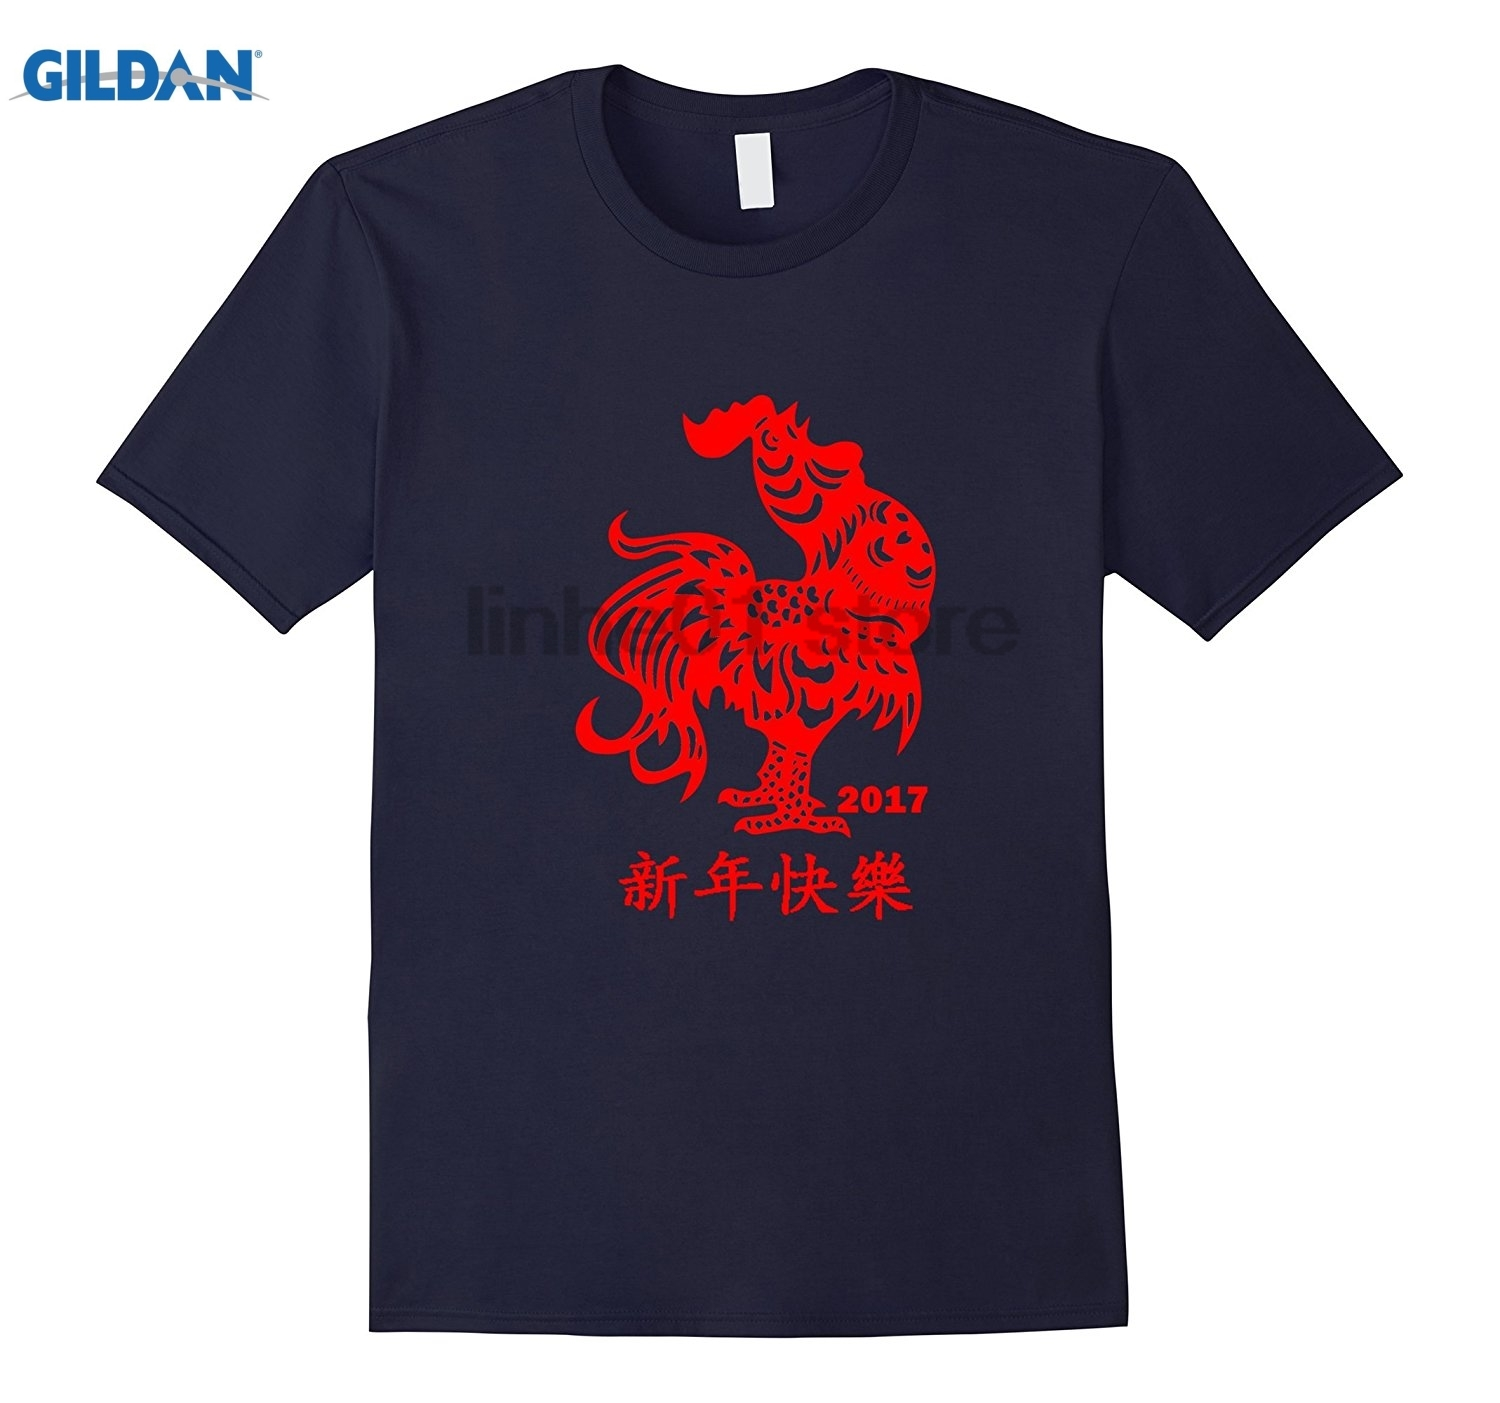 GILDAN Happy New Year Chinese T-Shirt 2017 Rooster Papercut Art Tee Womens T-shirt Womens T-shirt